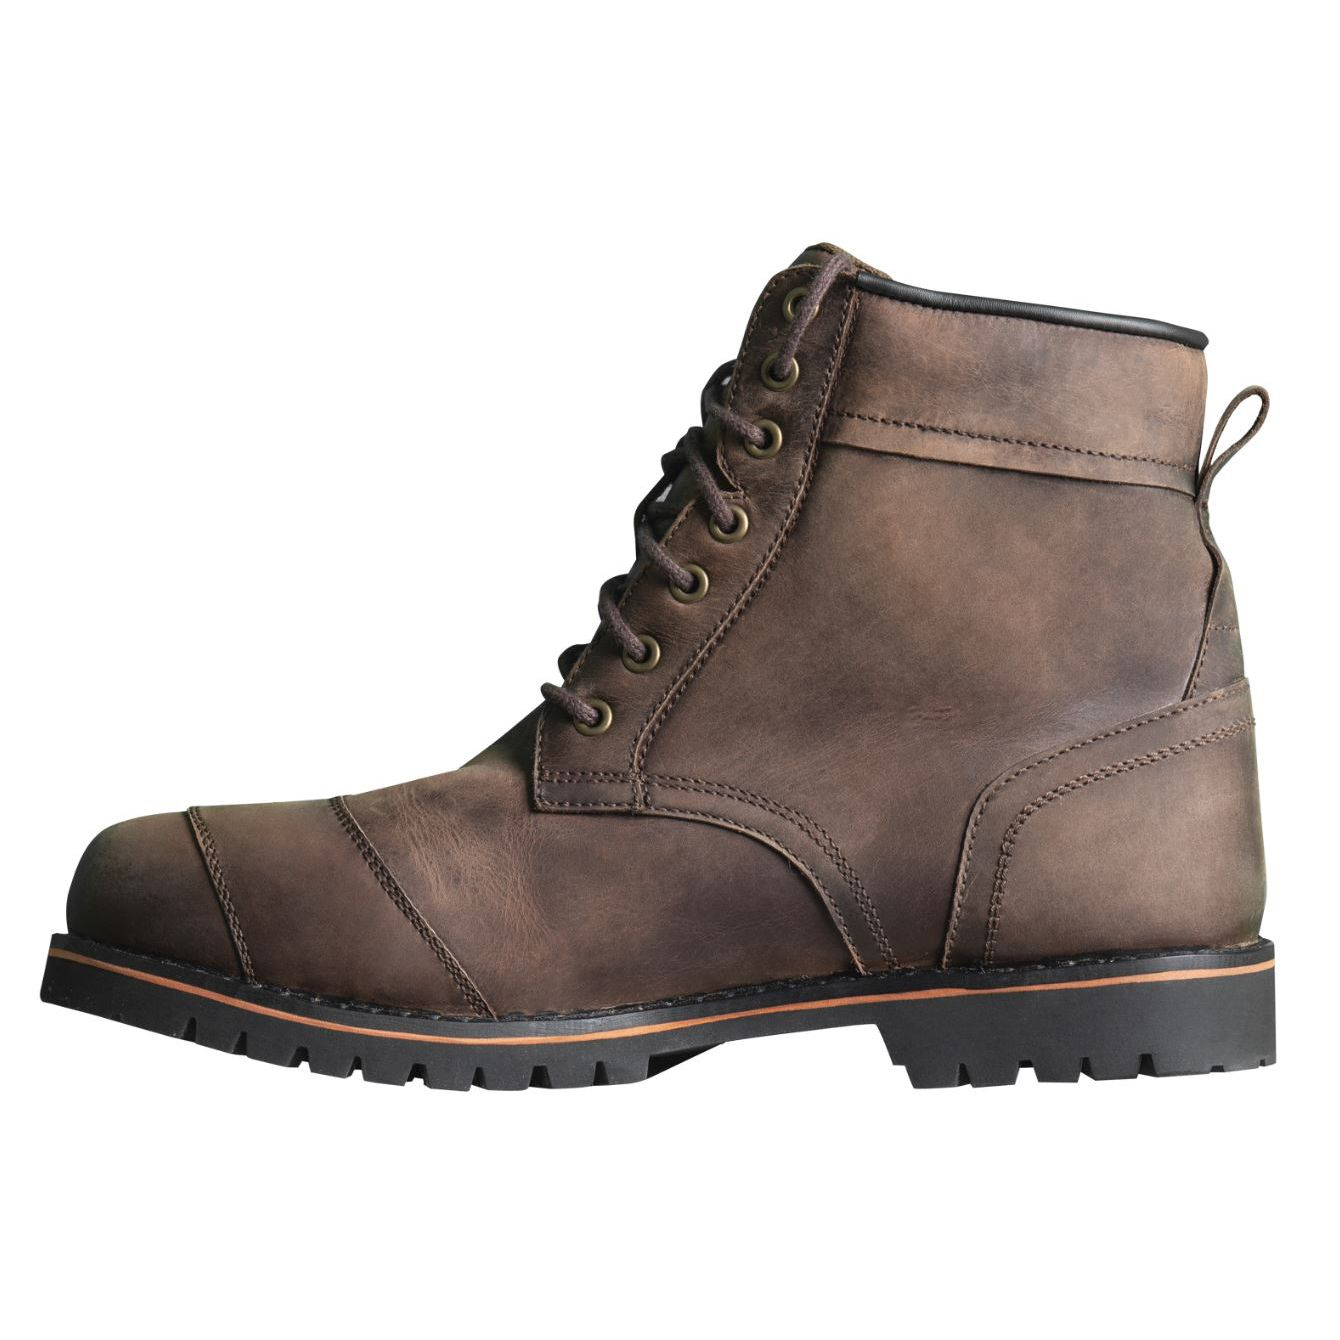 2 Roadster Boot Rst Brown Waterproof dCerxBWo